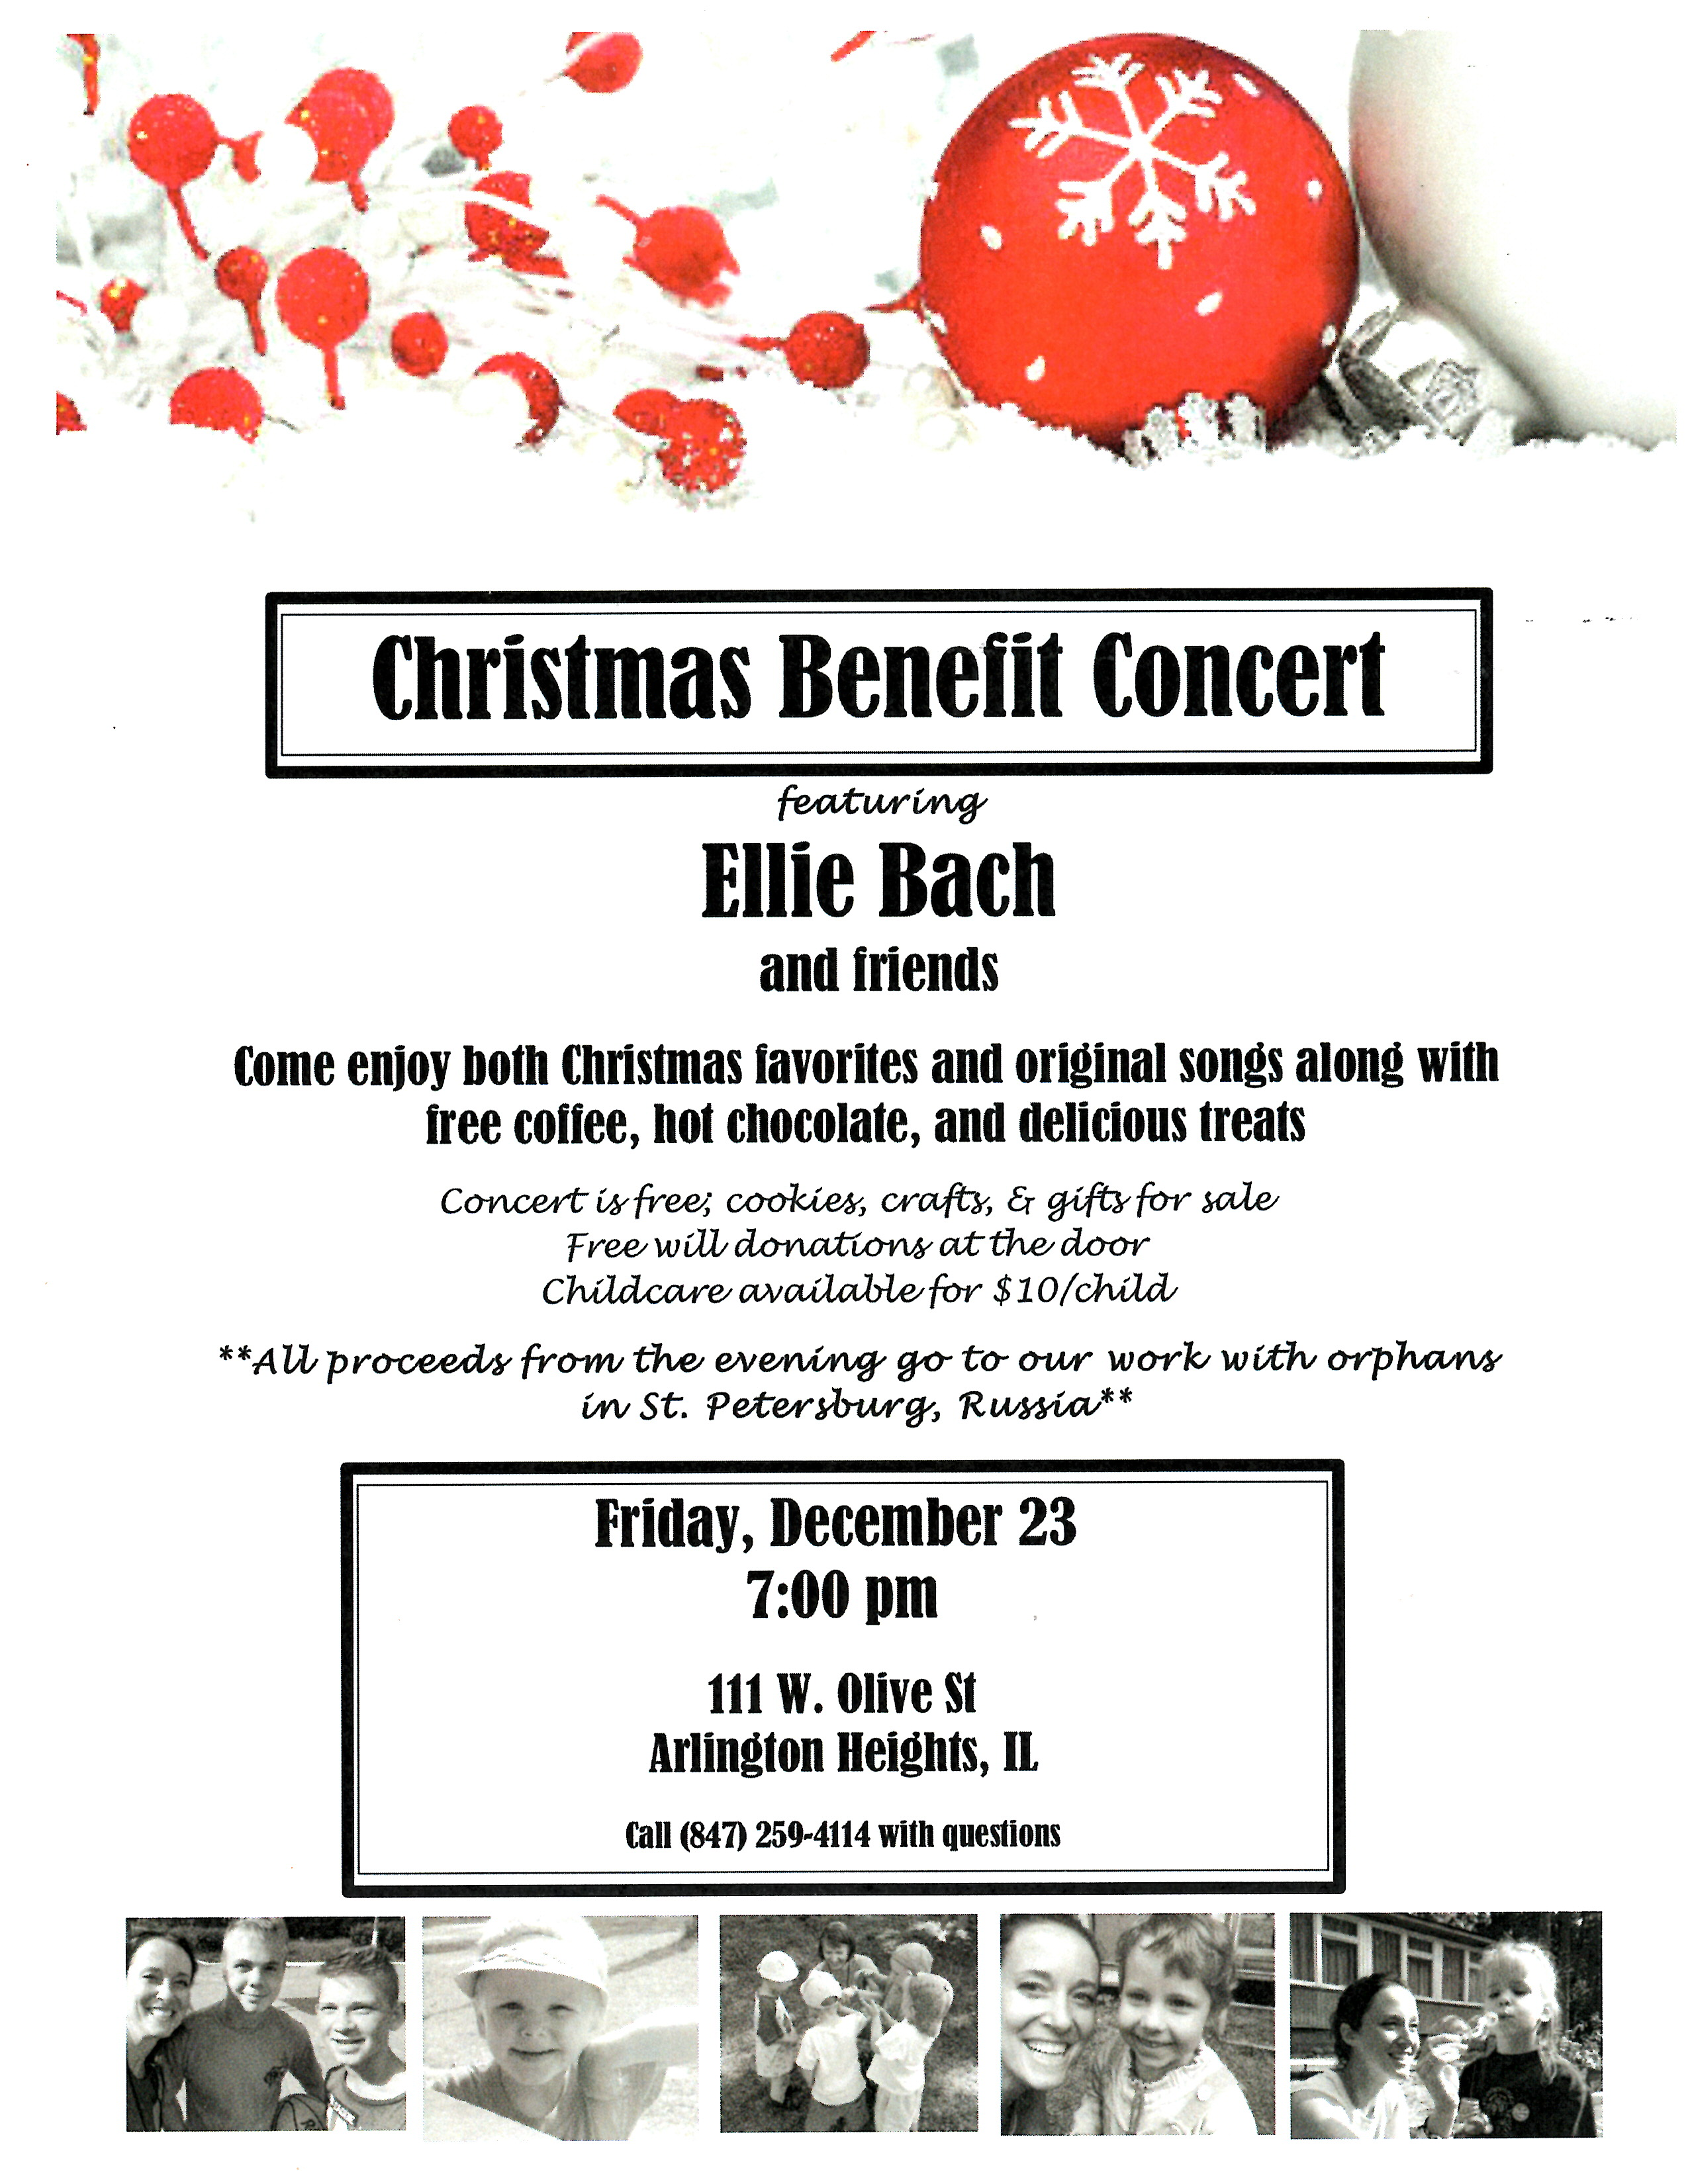 Dec 23 Christmas Benefit Concert Featuring Ellie Bach And Friends Arlington Heights Il Patch